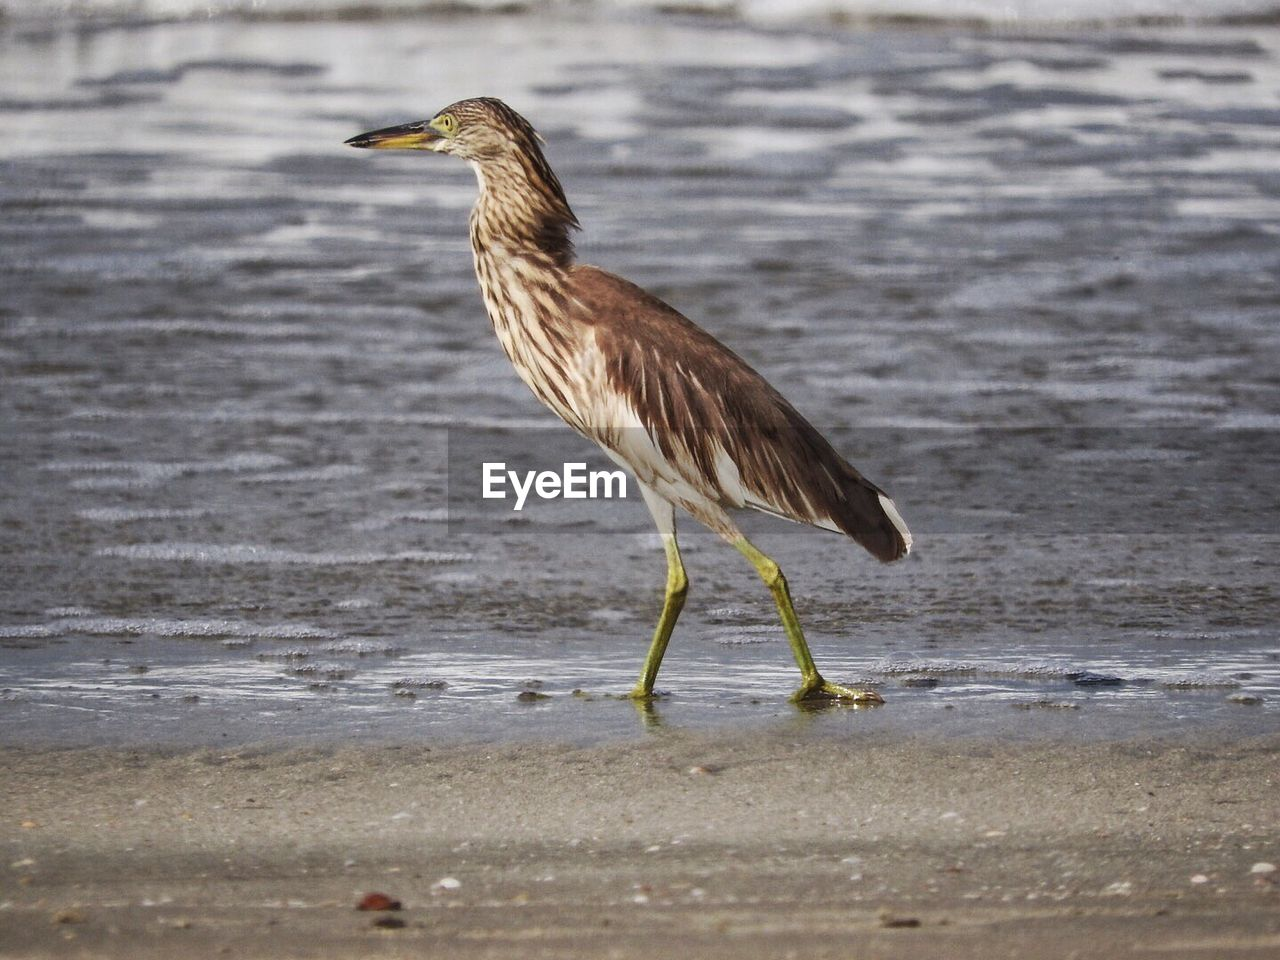 animal themes, animal wildlife, animal, one animal, animals in the wild, bird, vertebrate, beach, water, side view, land, nature, sand, full length, day, sea, no people, focus on foreground, outdoors, profile view